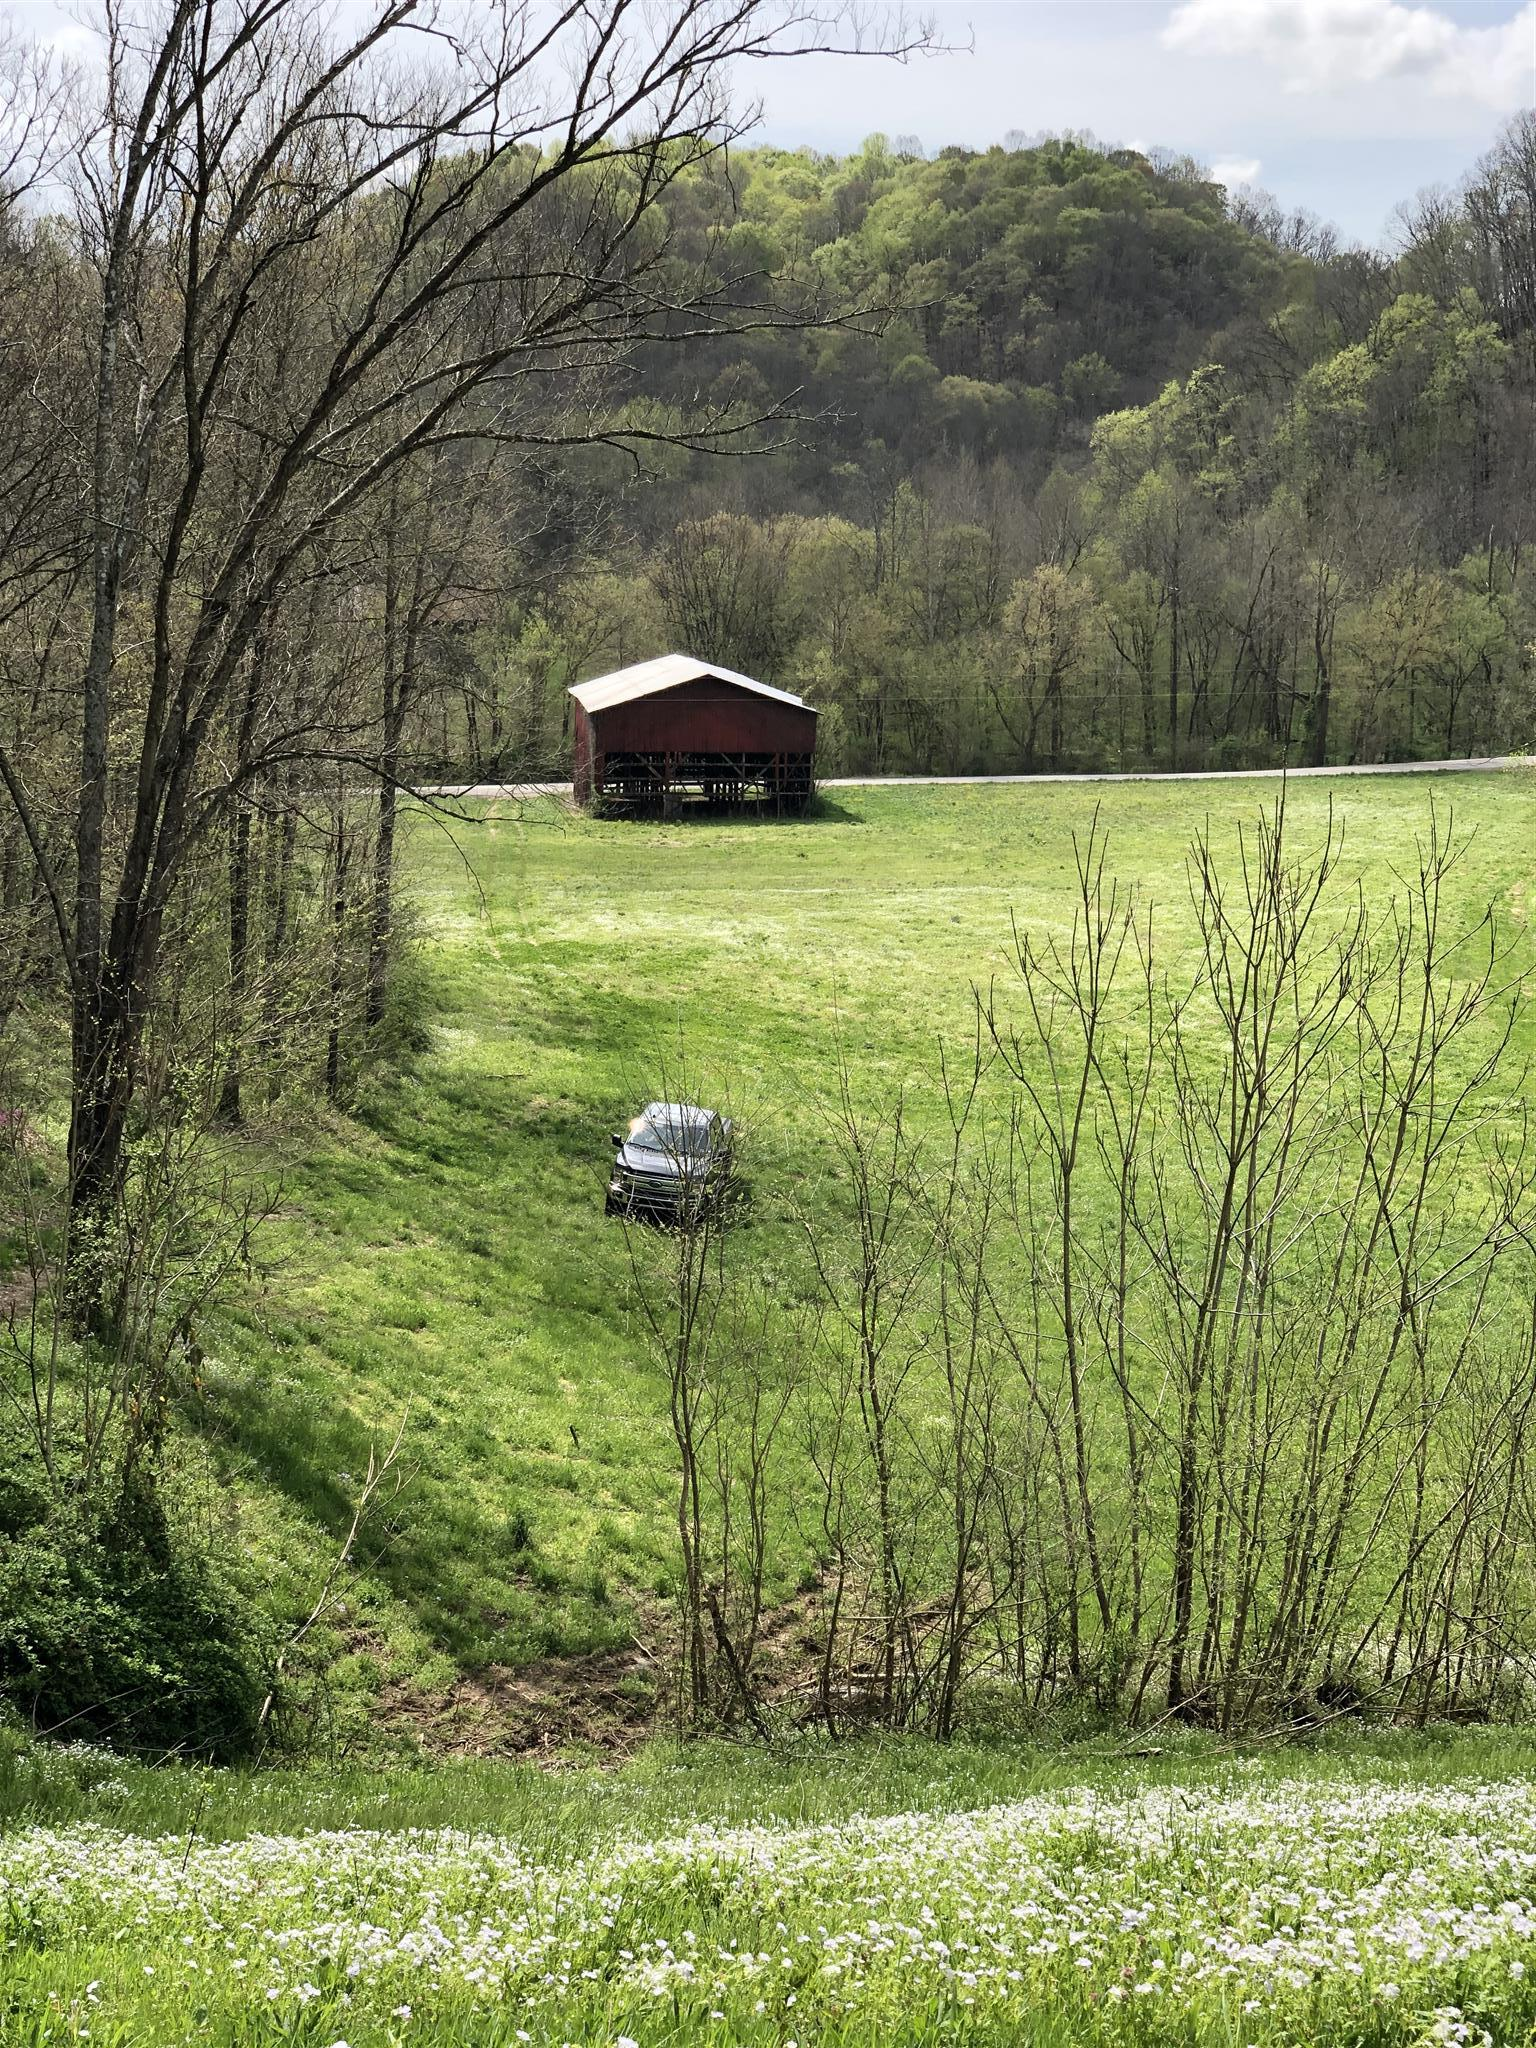 8240 JENNINGS CREEK RD, Red Boiling Springs, TN 37150 - Red Boiling Springs, TN real estate listing